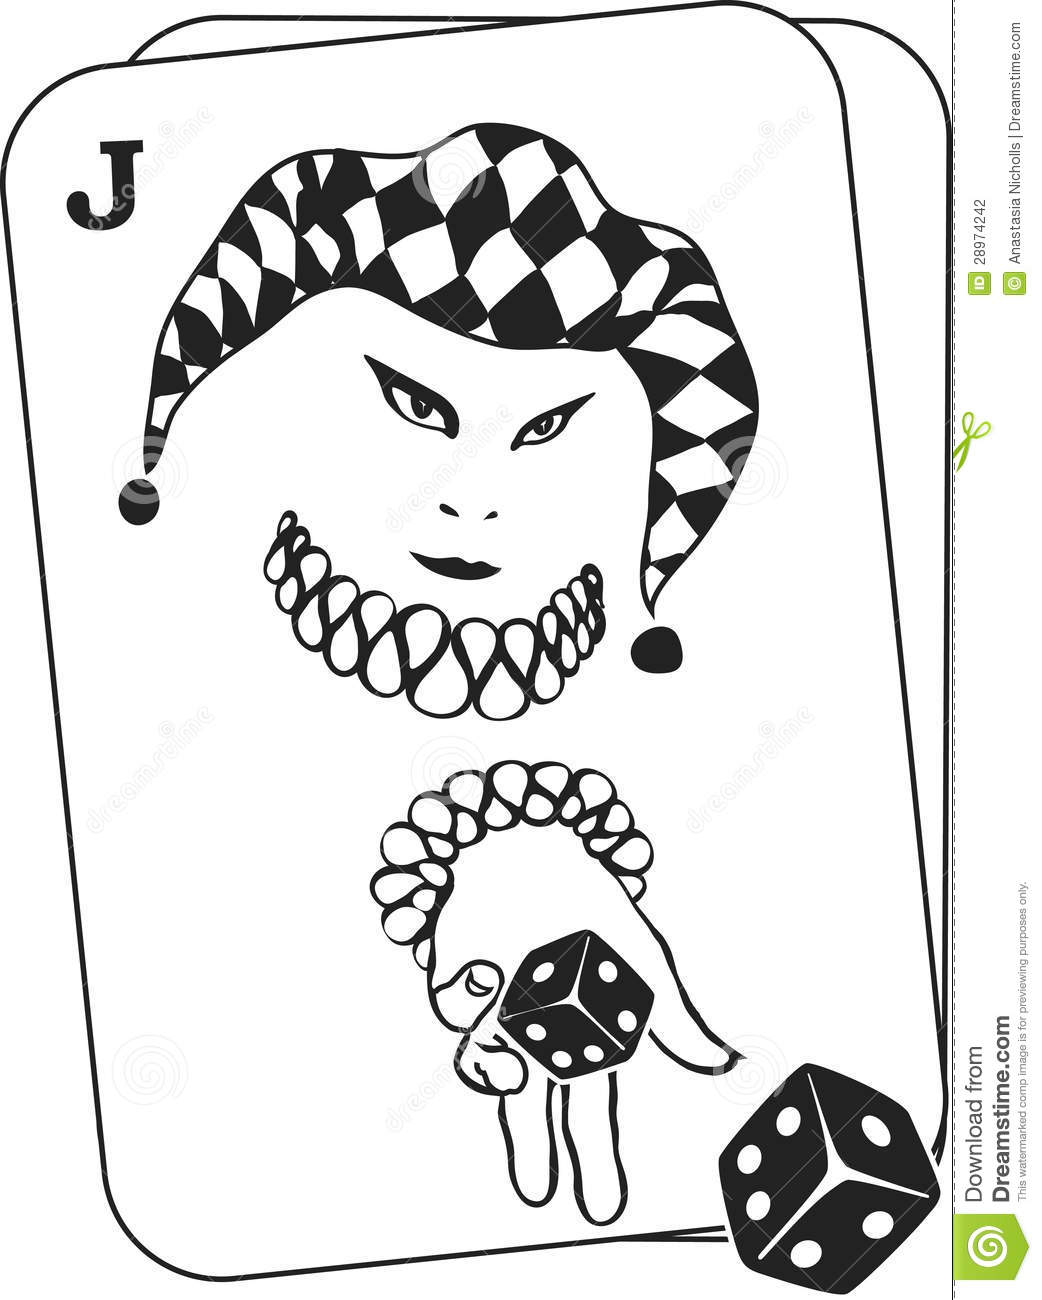 Joker Throwing Dice From Inside A Playing Card Stock